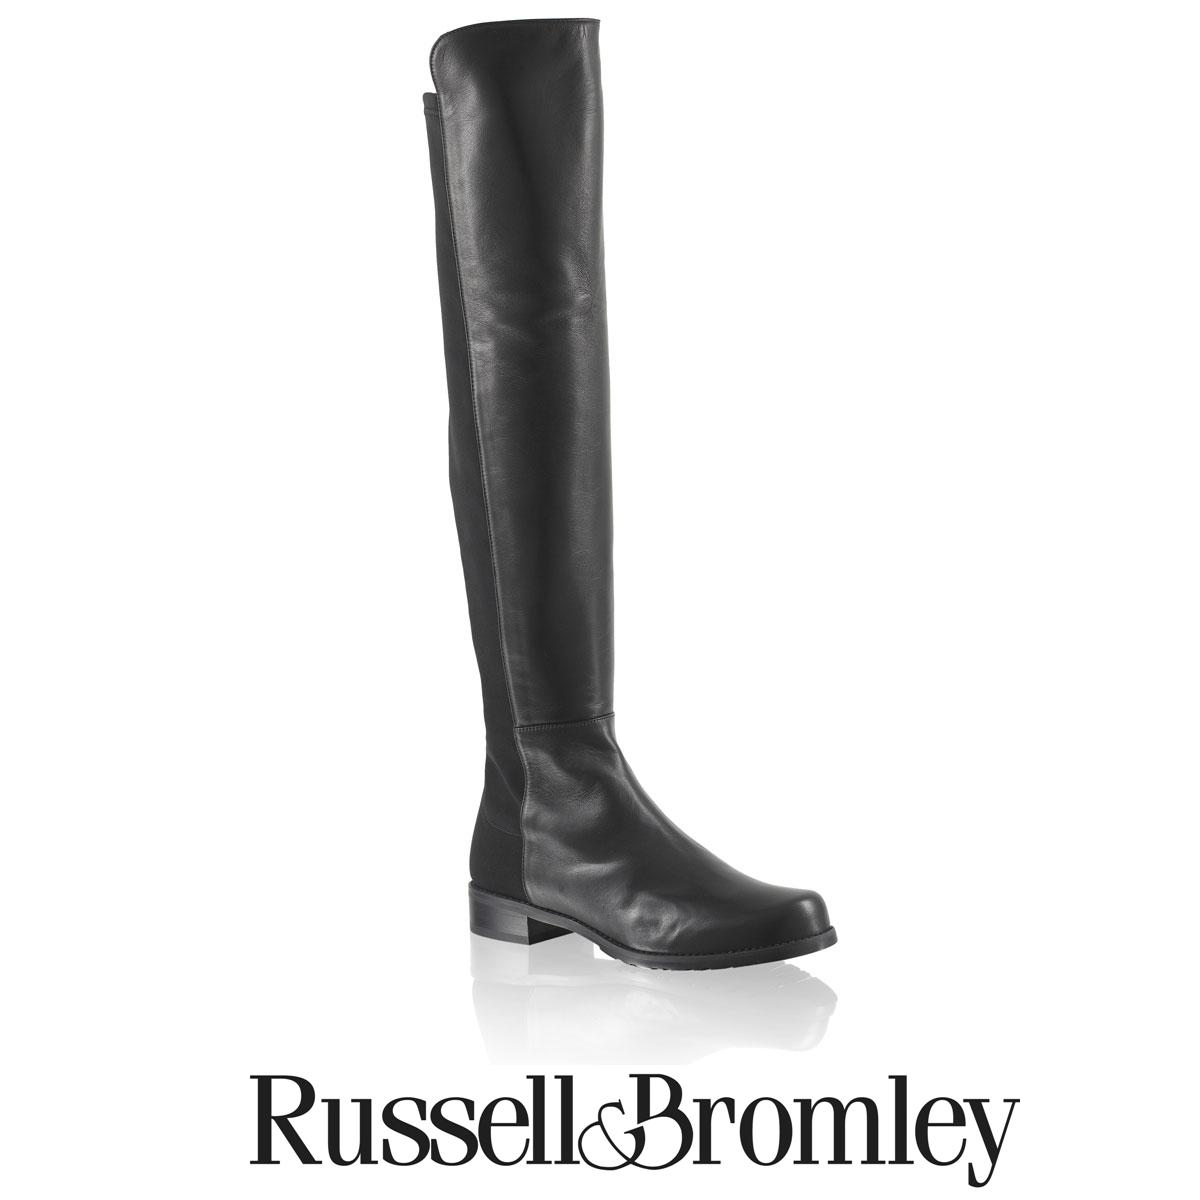 Duchess of Cambridge - Kate Midletton - RUSSELL & BROMLEY